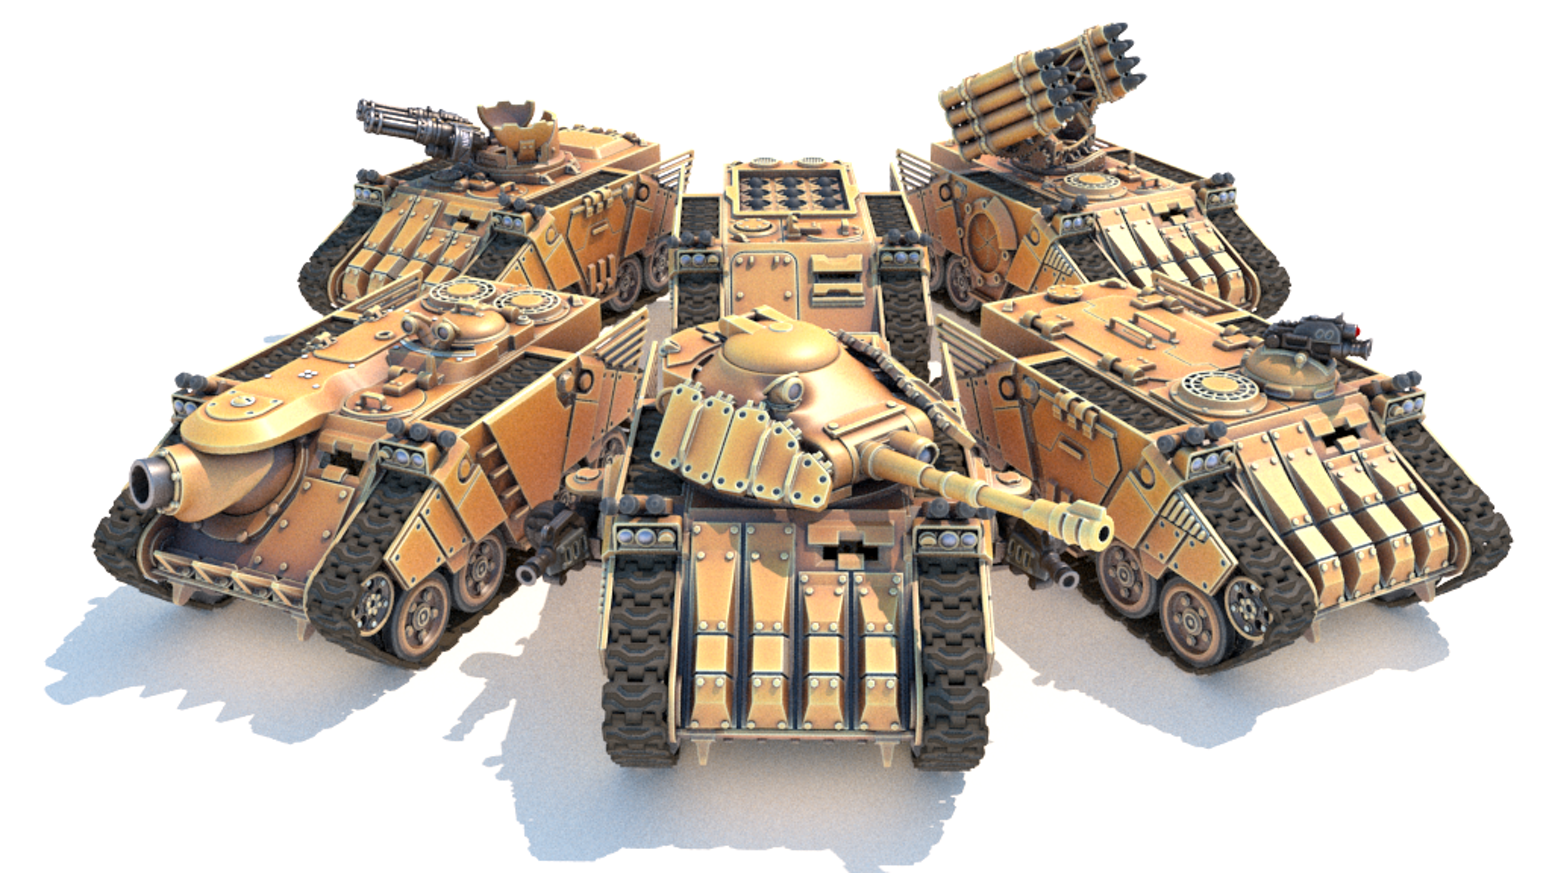 Many vehicles in one. Swap modules on the go and make a troop carrier, battle tank, rocket artillery, assault gun and more.